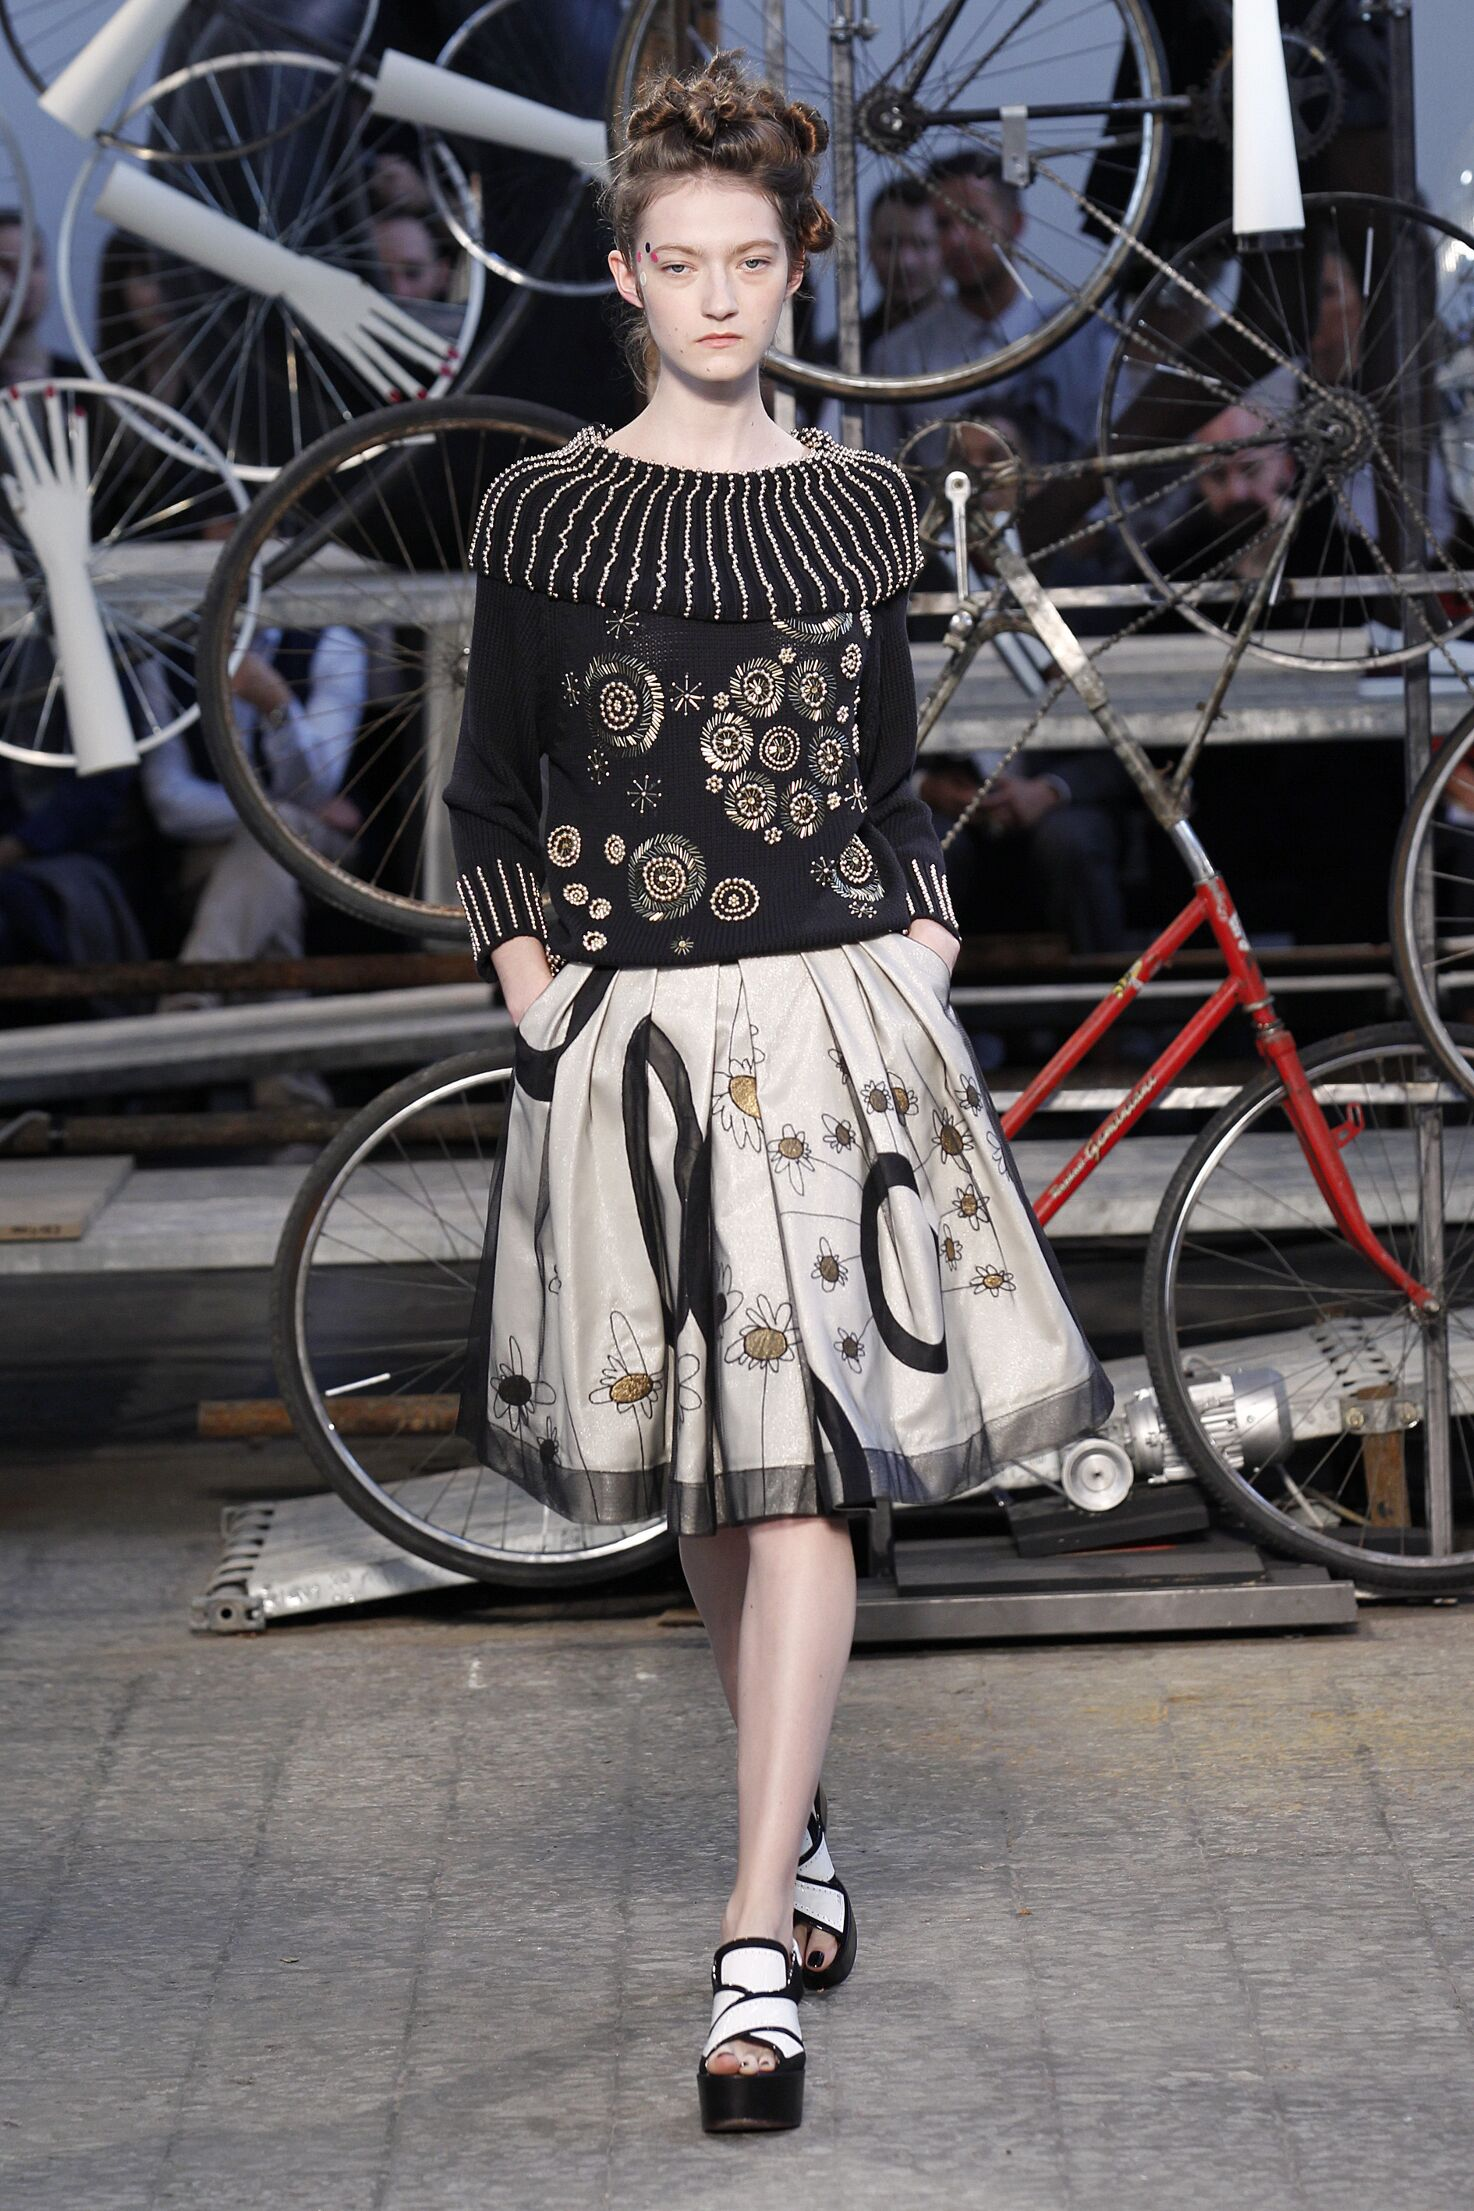 2015 Antonio Marras Summer Catwalk